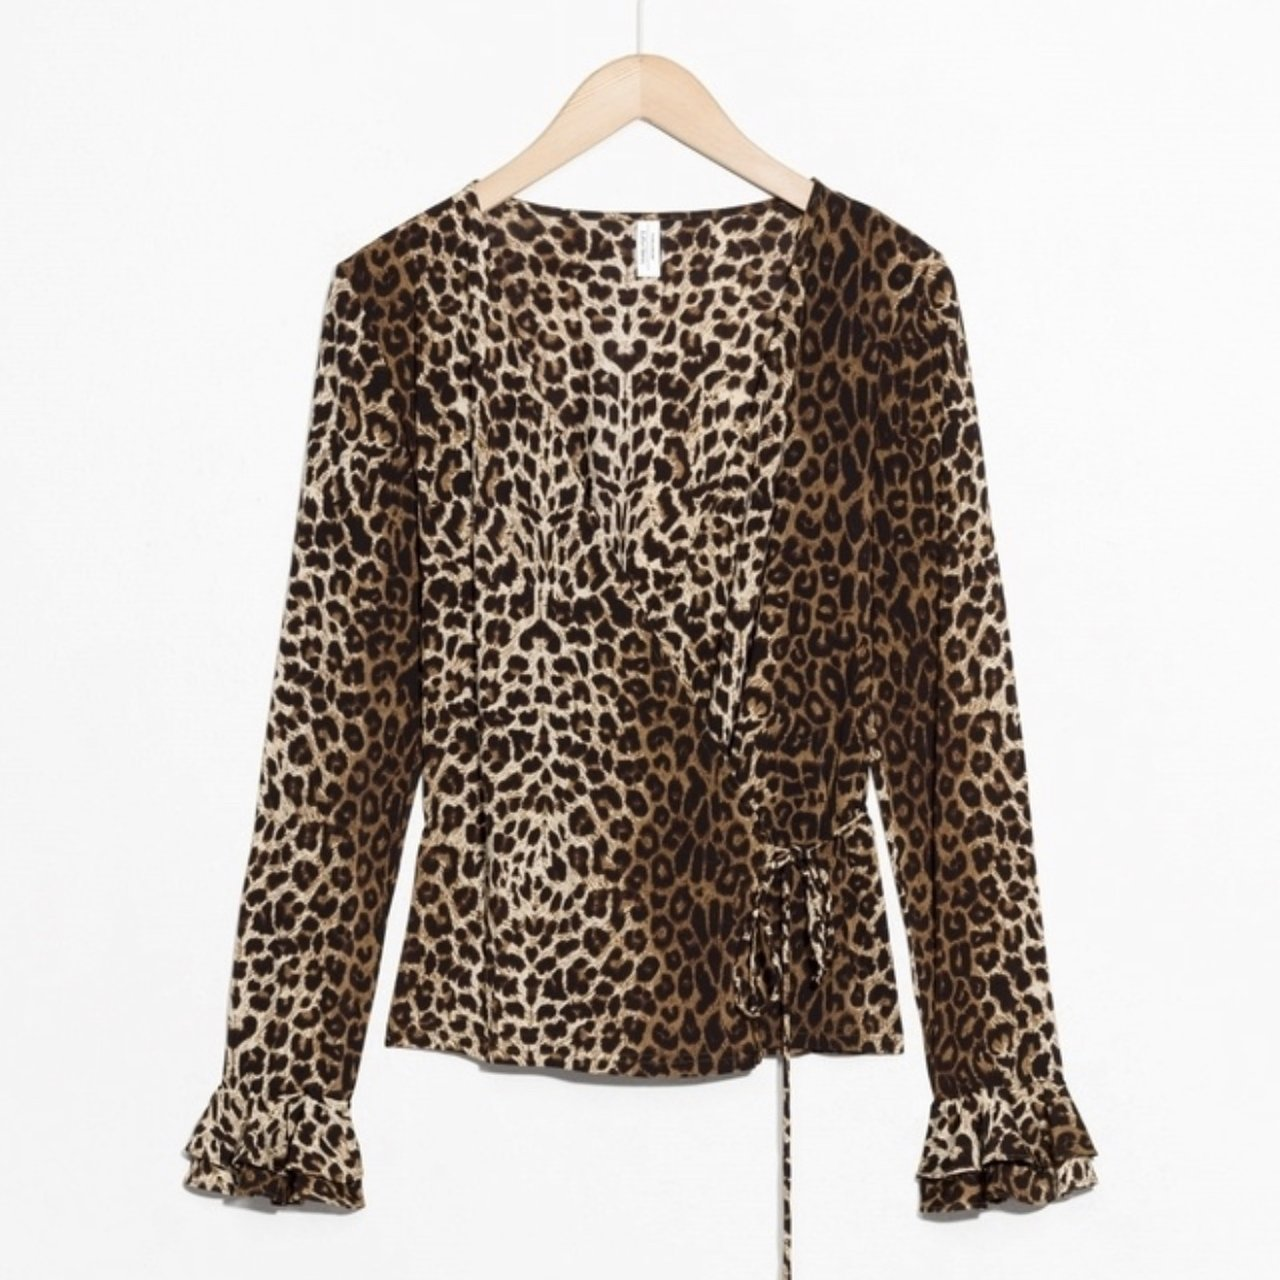 82e20e115bed @georgiescott01. 3 days ago. United Kingdom. & Other Stories leopard print  wrap blouse ...